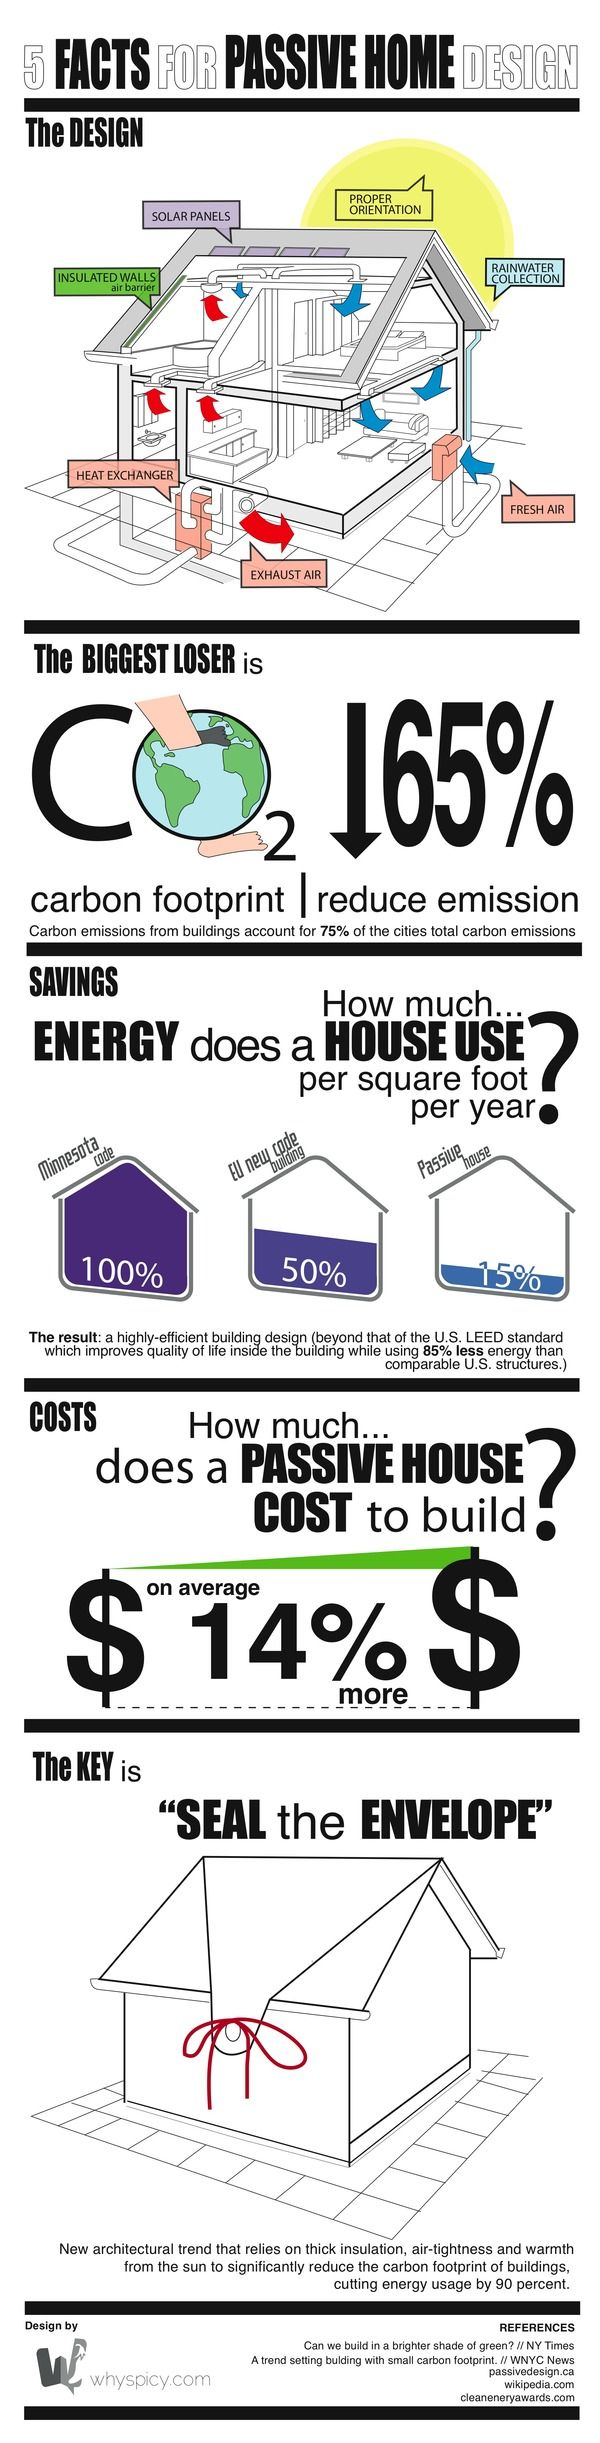 Passive house | Infographic by Paula Nogueron, via Behance